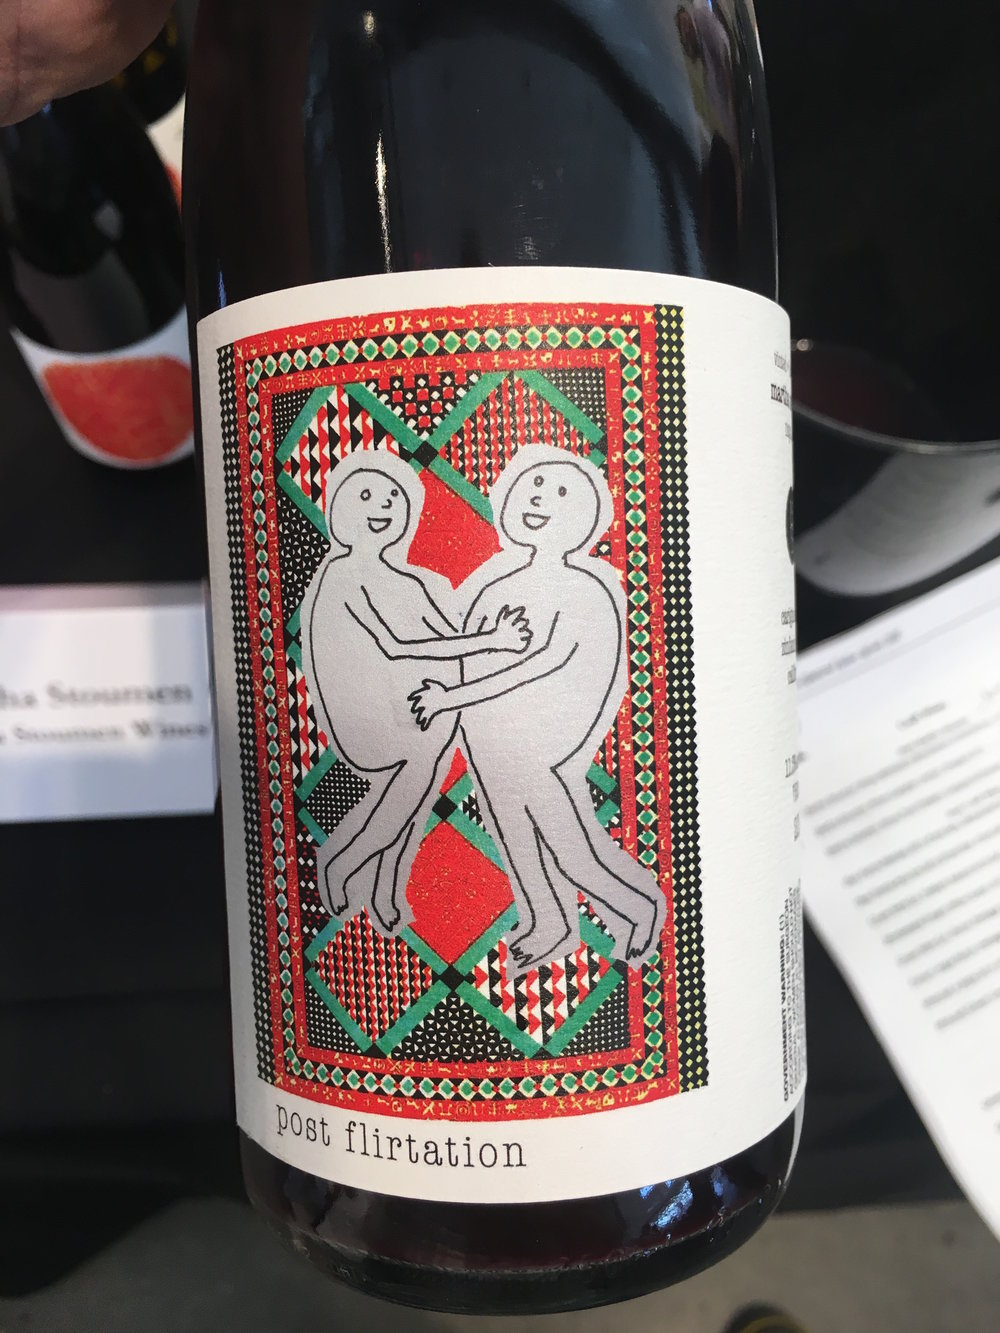 Stoumen's 'Post Flirtation' bottle of Carignan/Zinfandel deliciousness. A steal at $20.